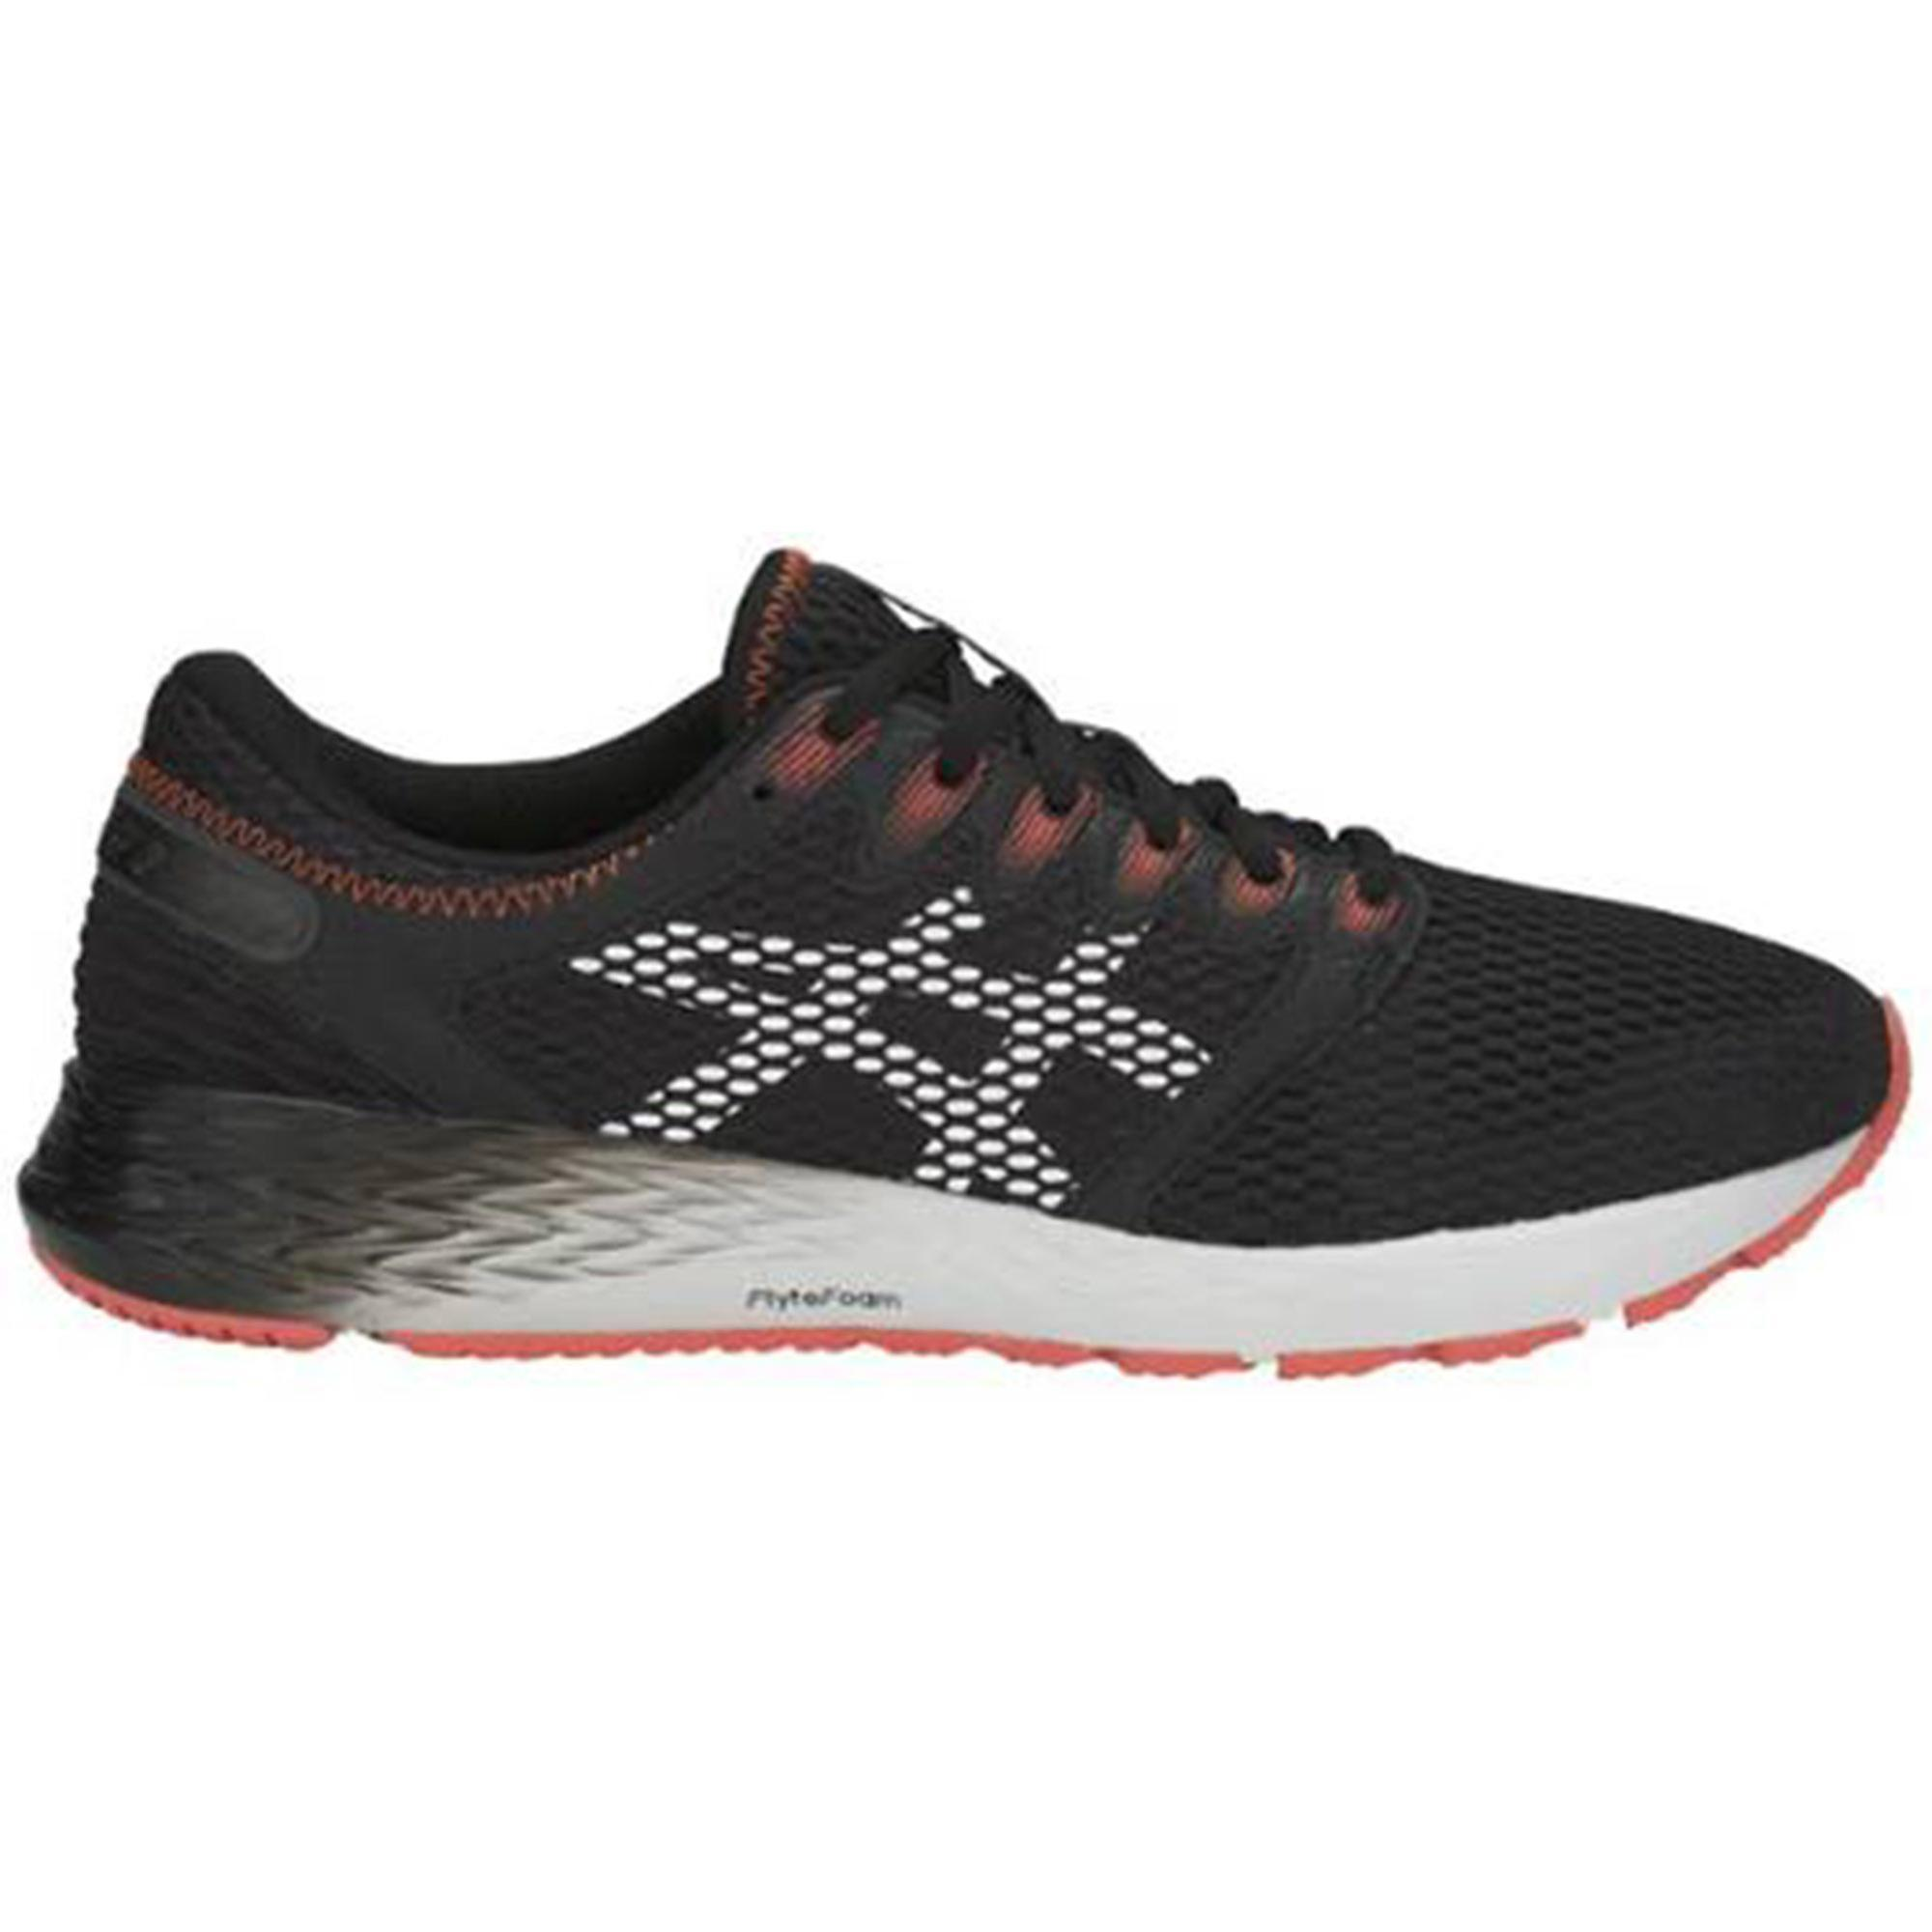 1936e02fb95 Comprar Zapatillas de Running Online | Decathlon